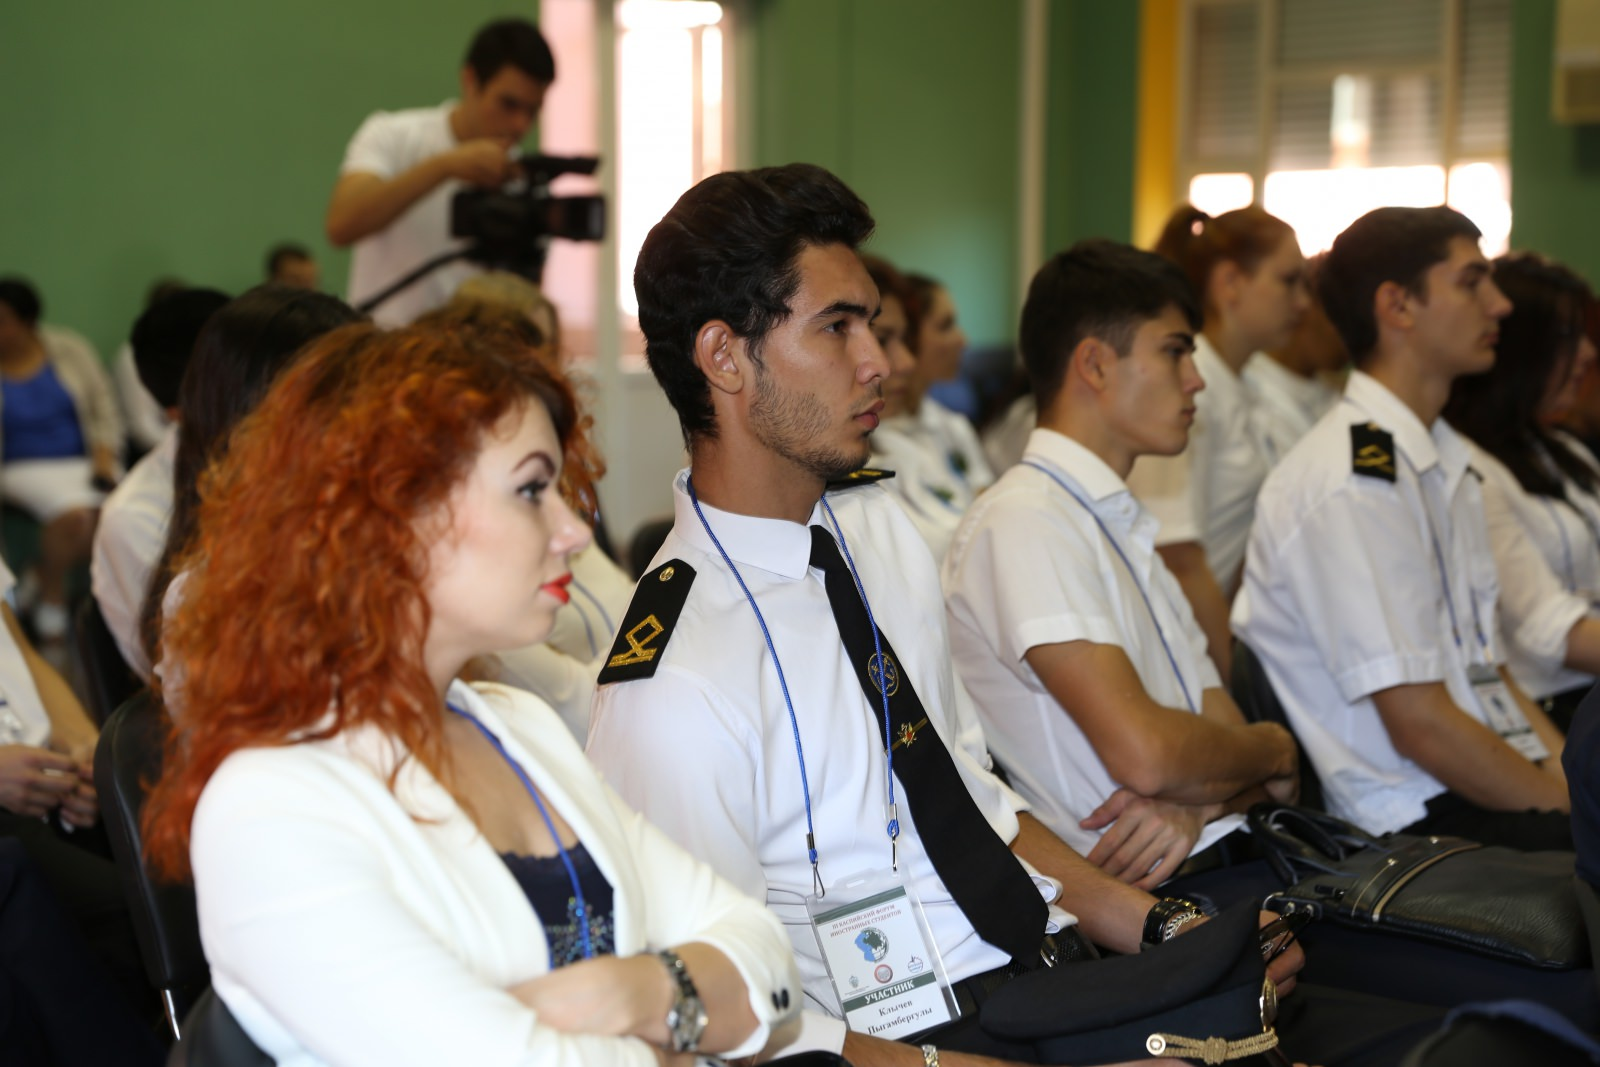 Caspian Forum of Foreign Students